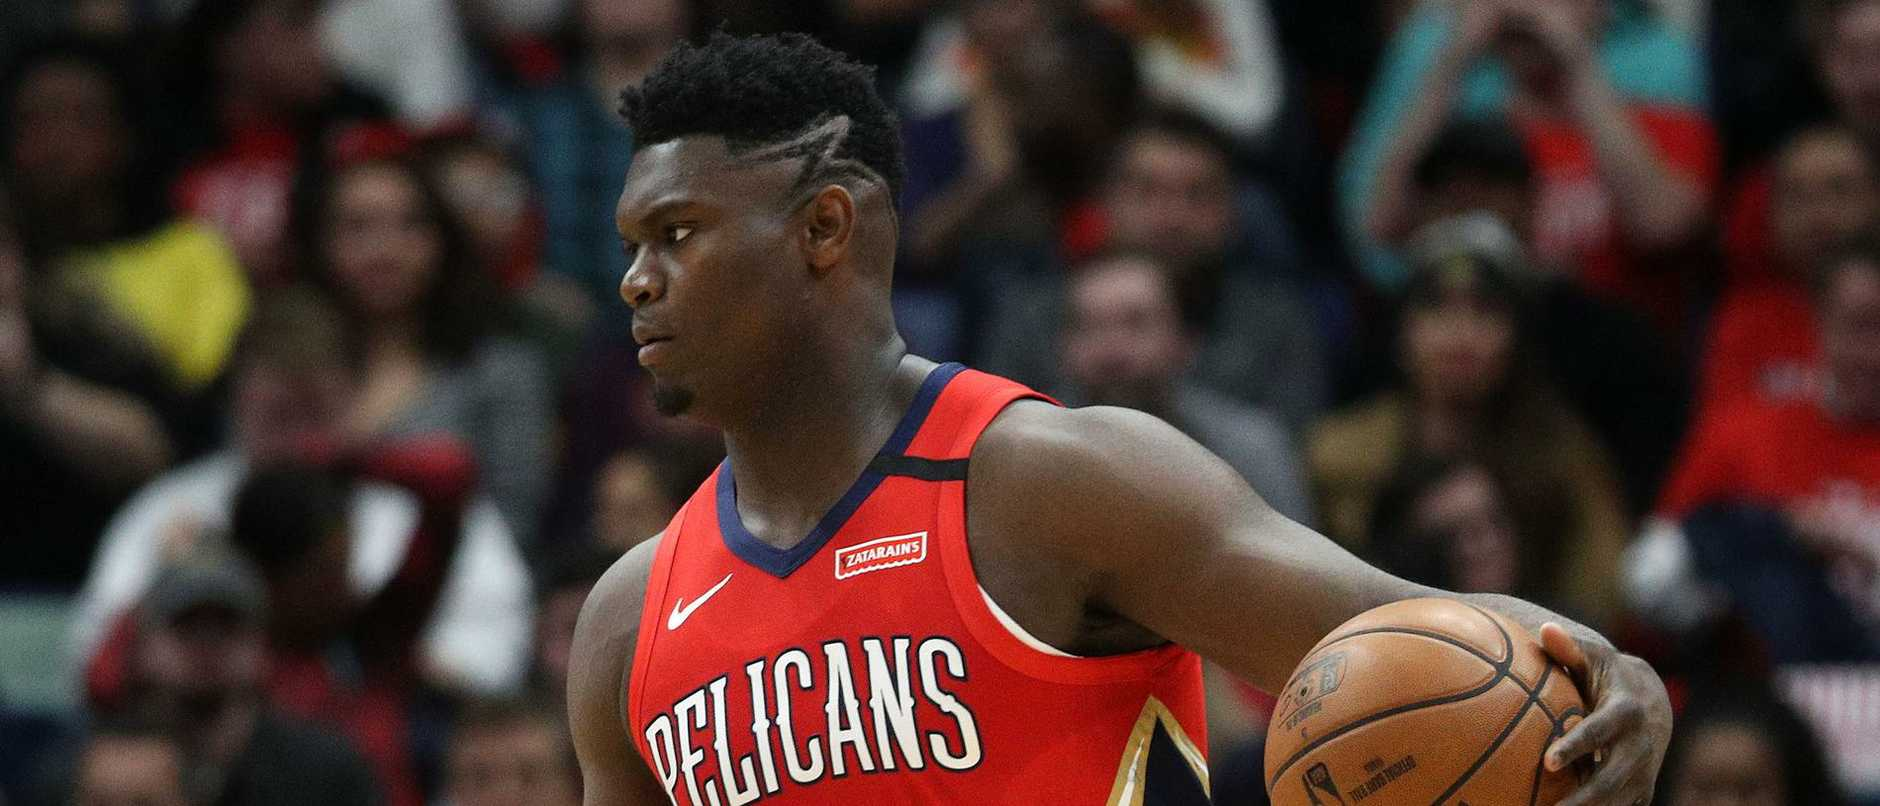 No.1 draft pick Zion Williamson has lived up to expectations in his NBA debut.